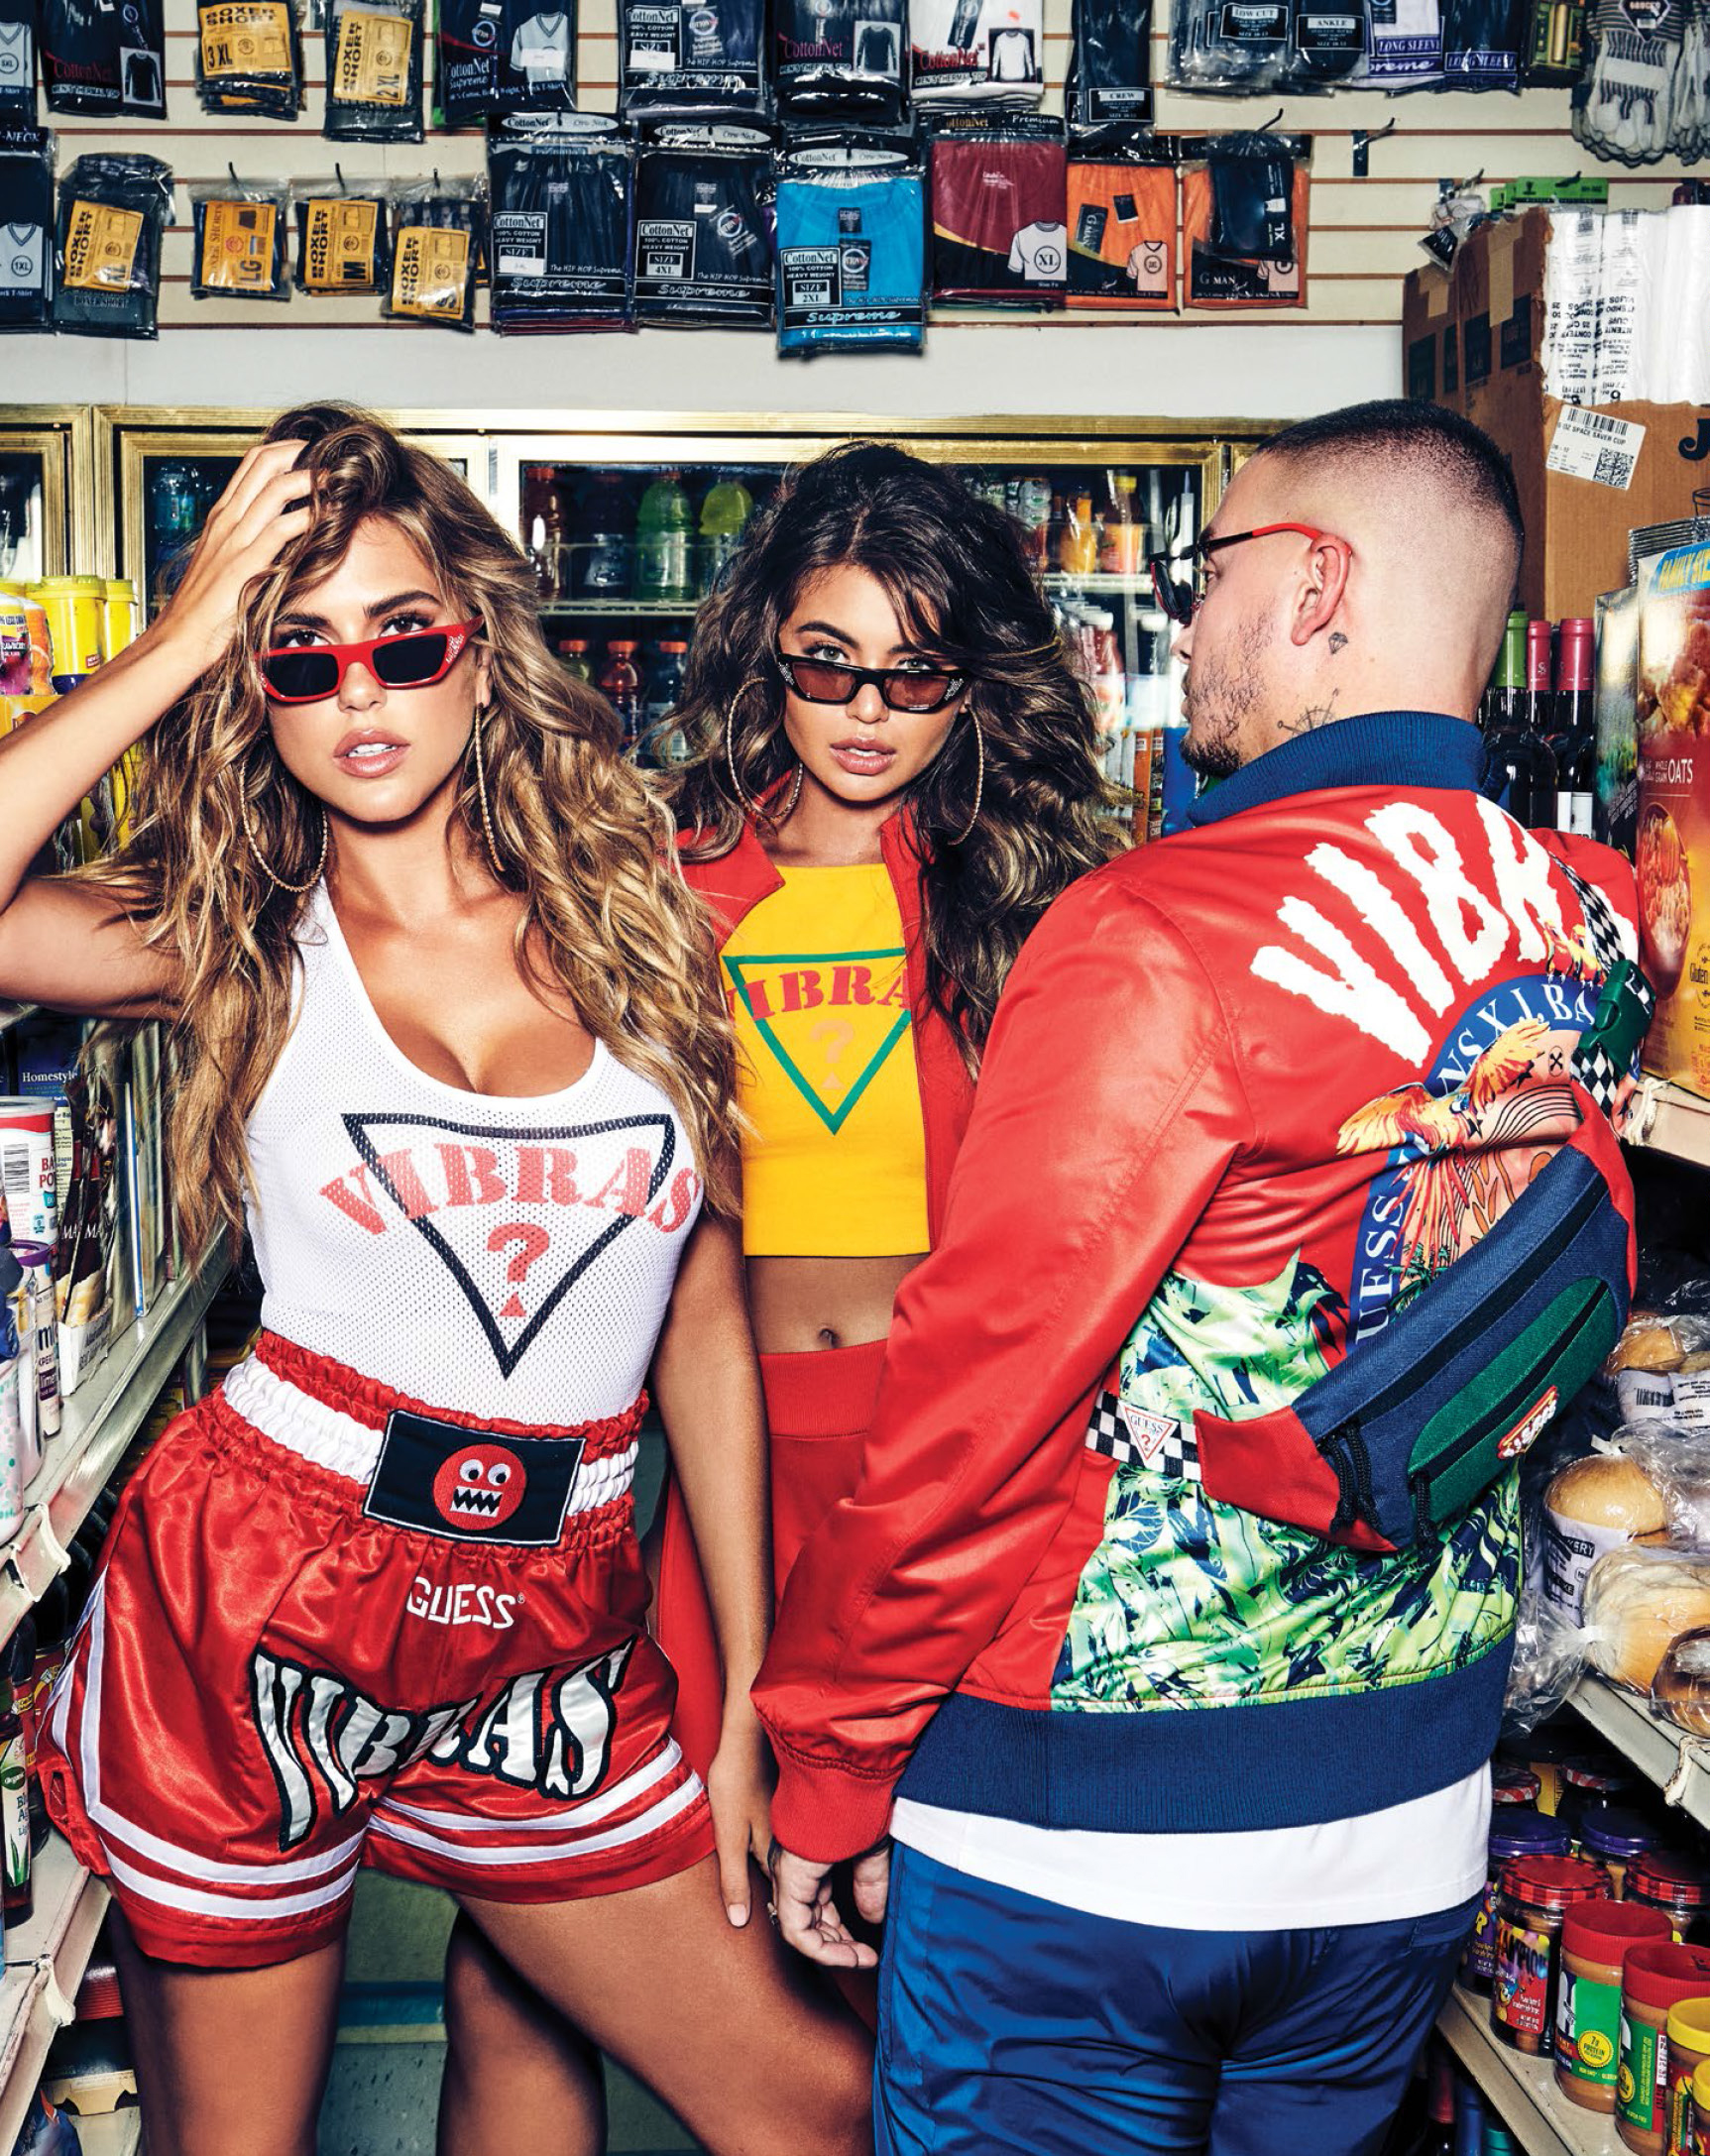 Guess Spring 2019 Campaign Vibras J Balvin Capsule Collection